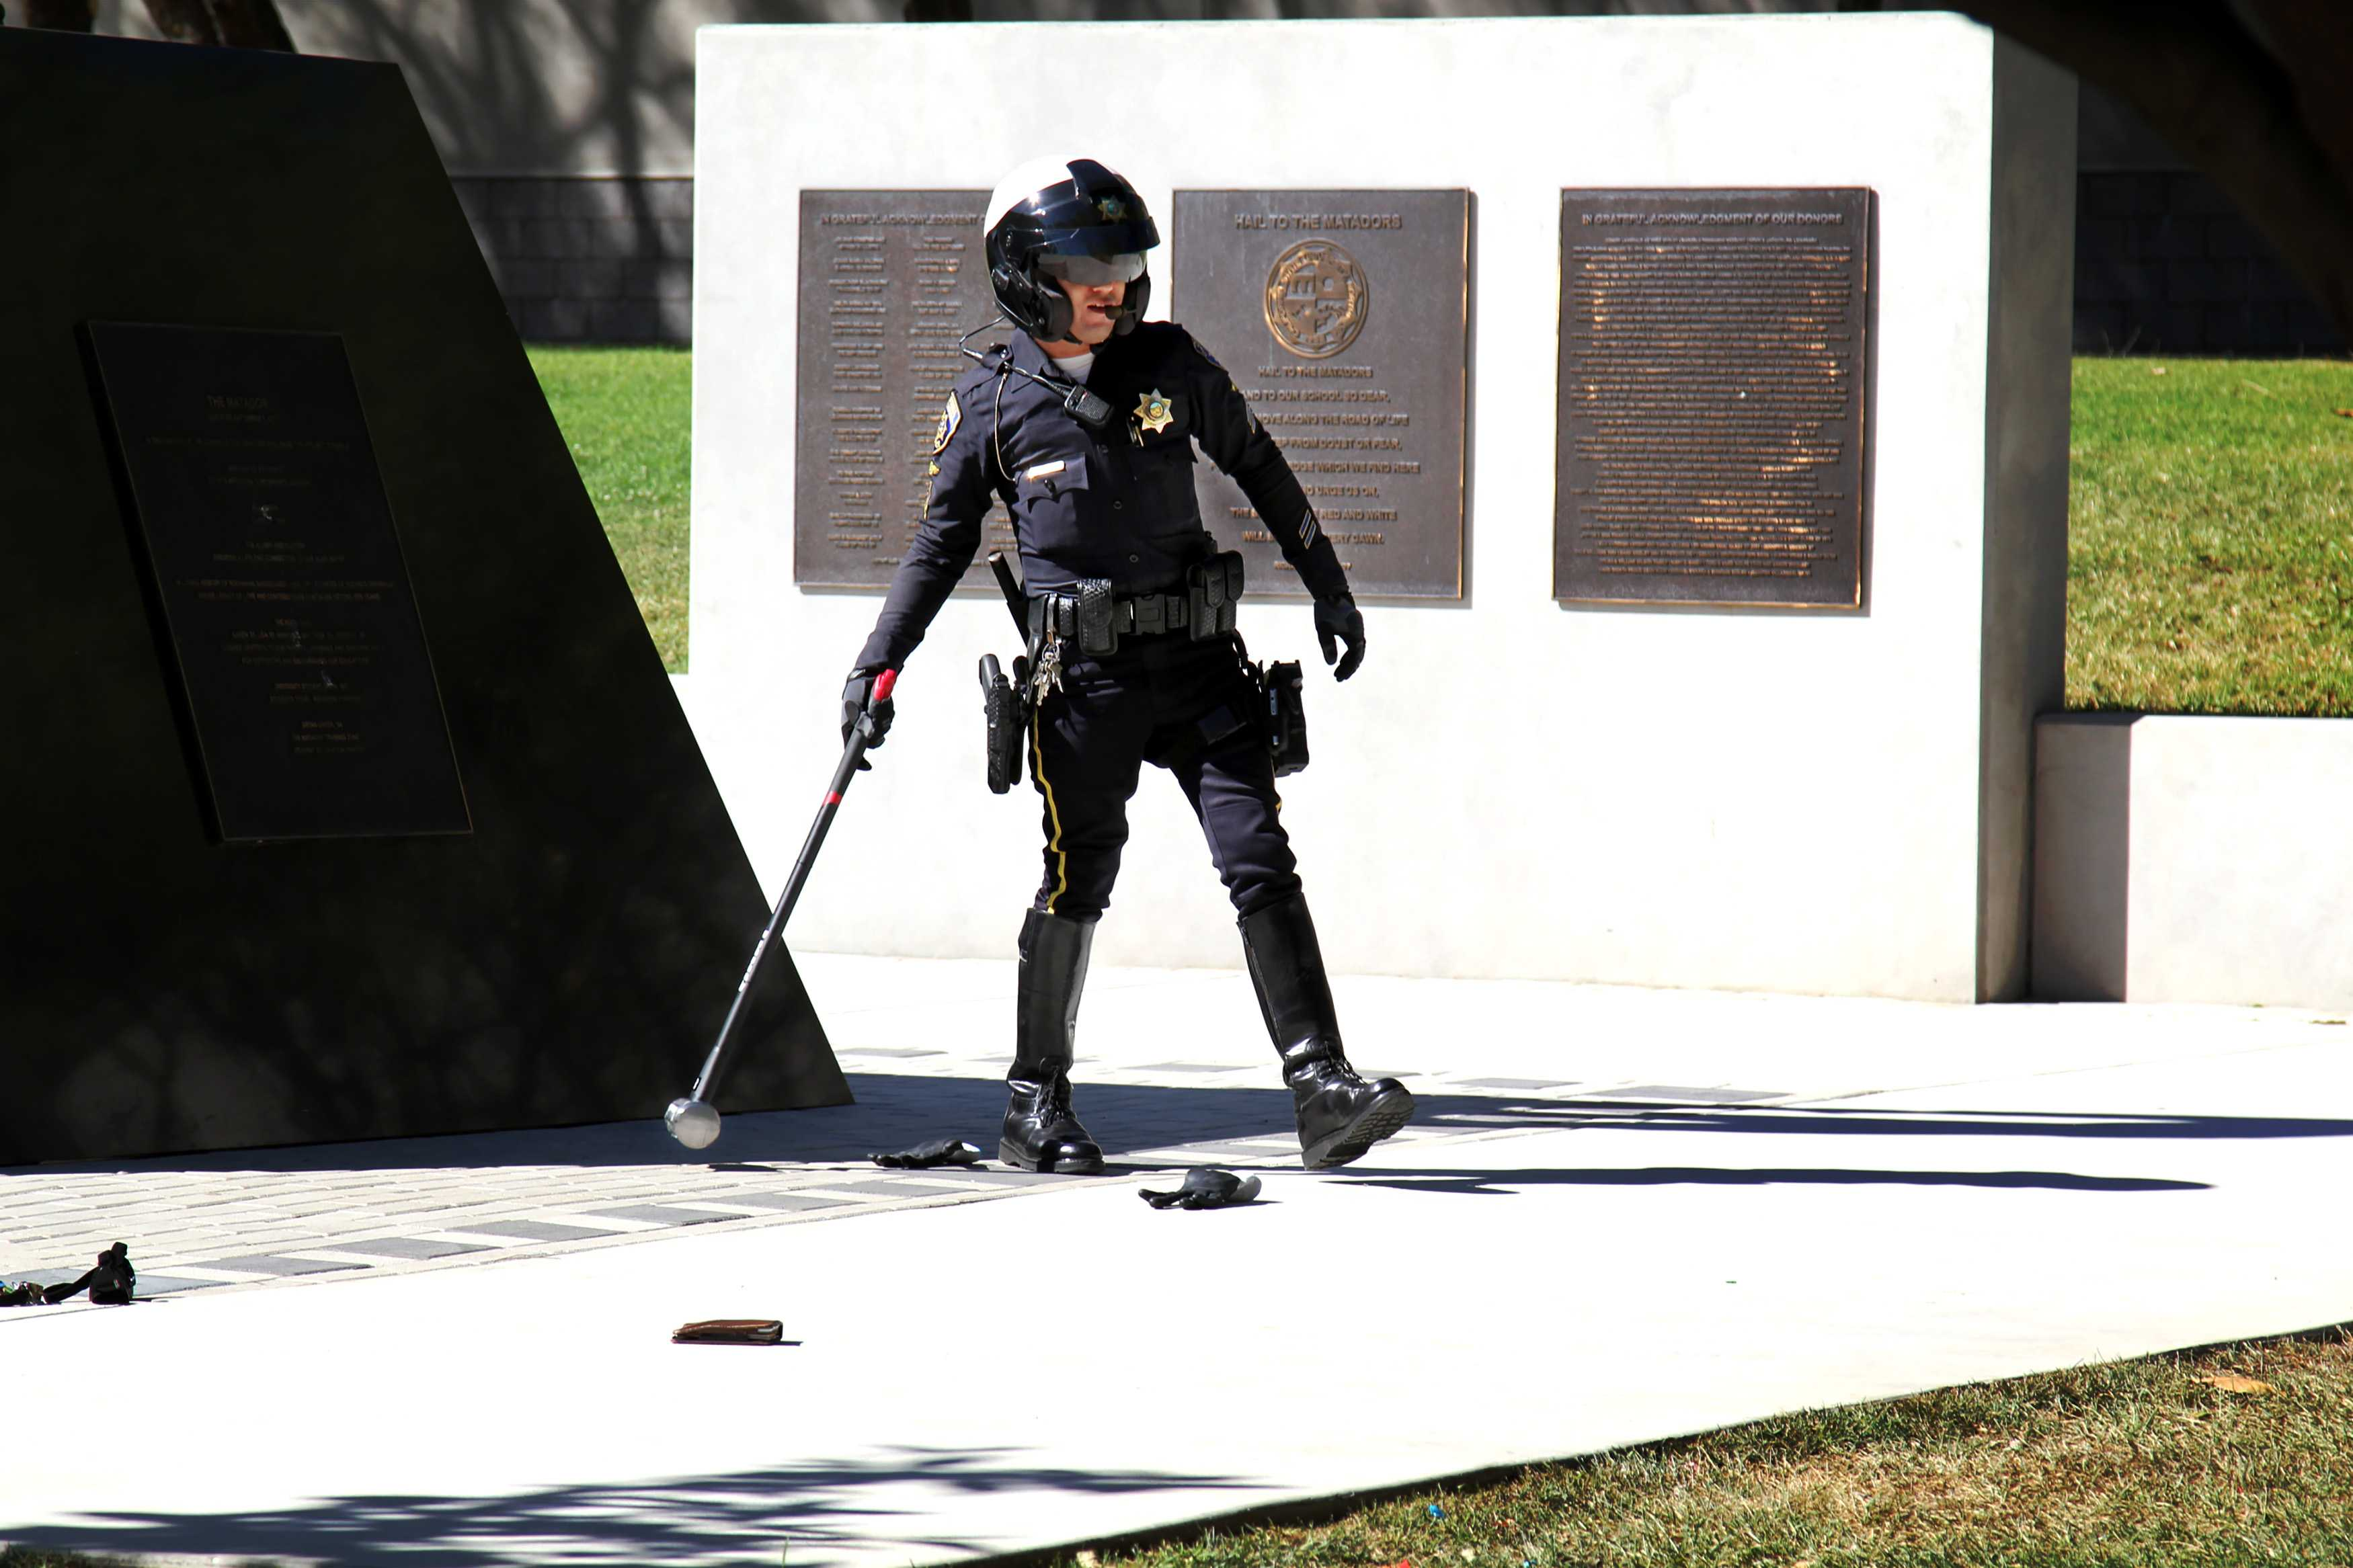 Police officer retrieves the sledge hammer used to damage school property